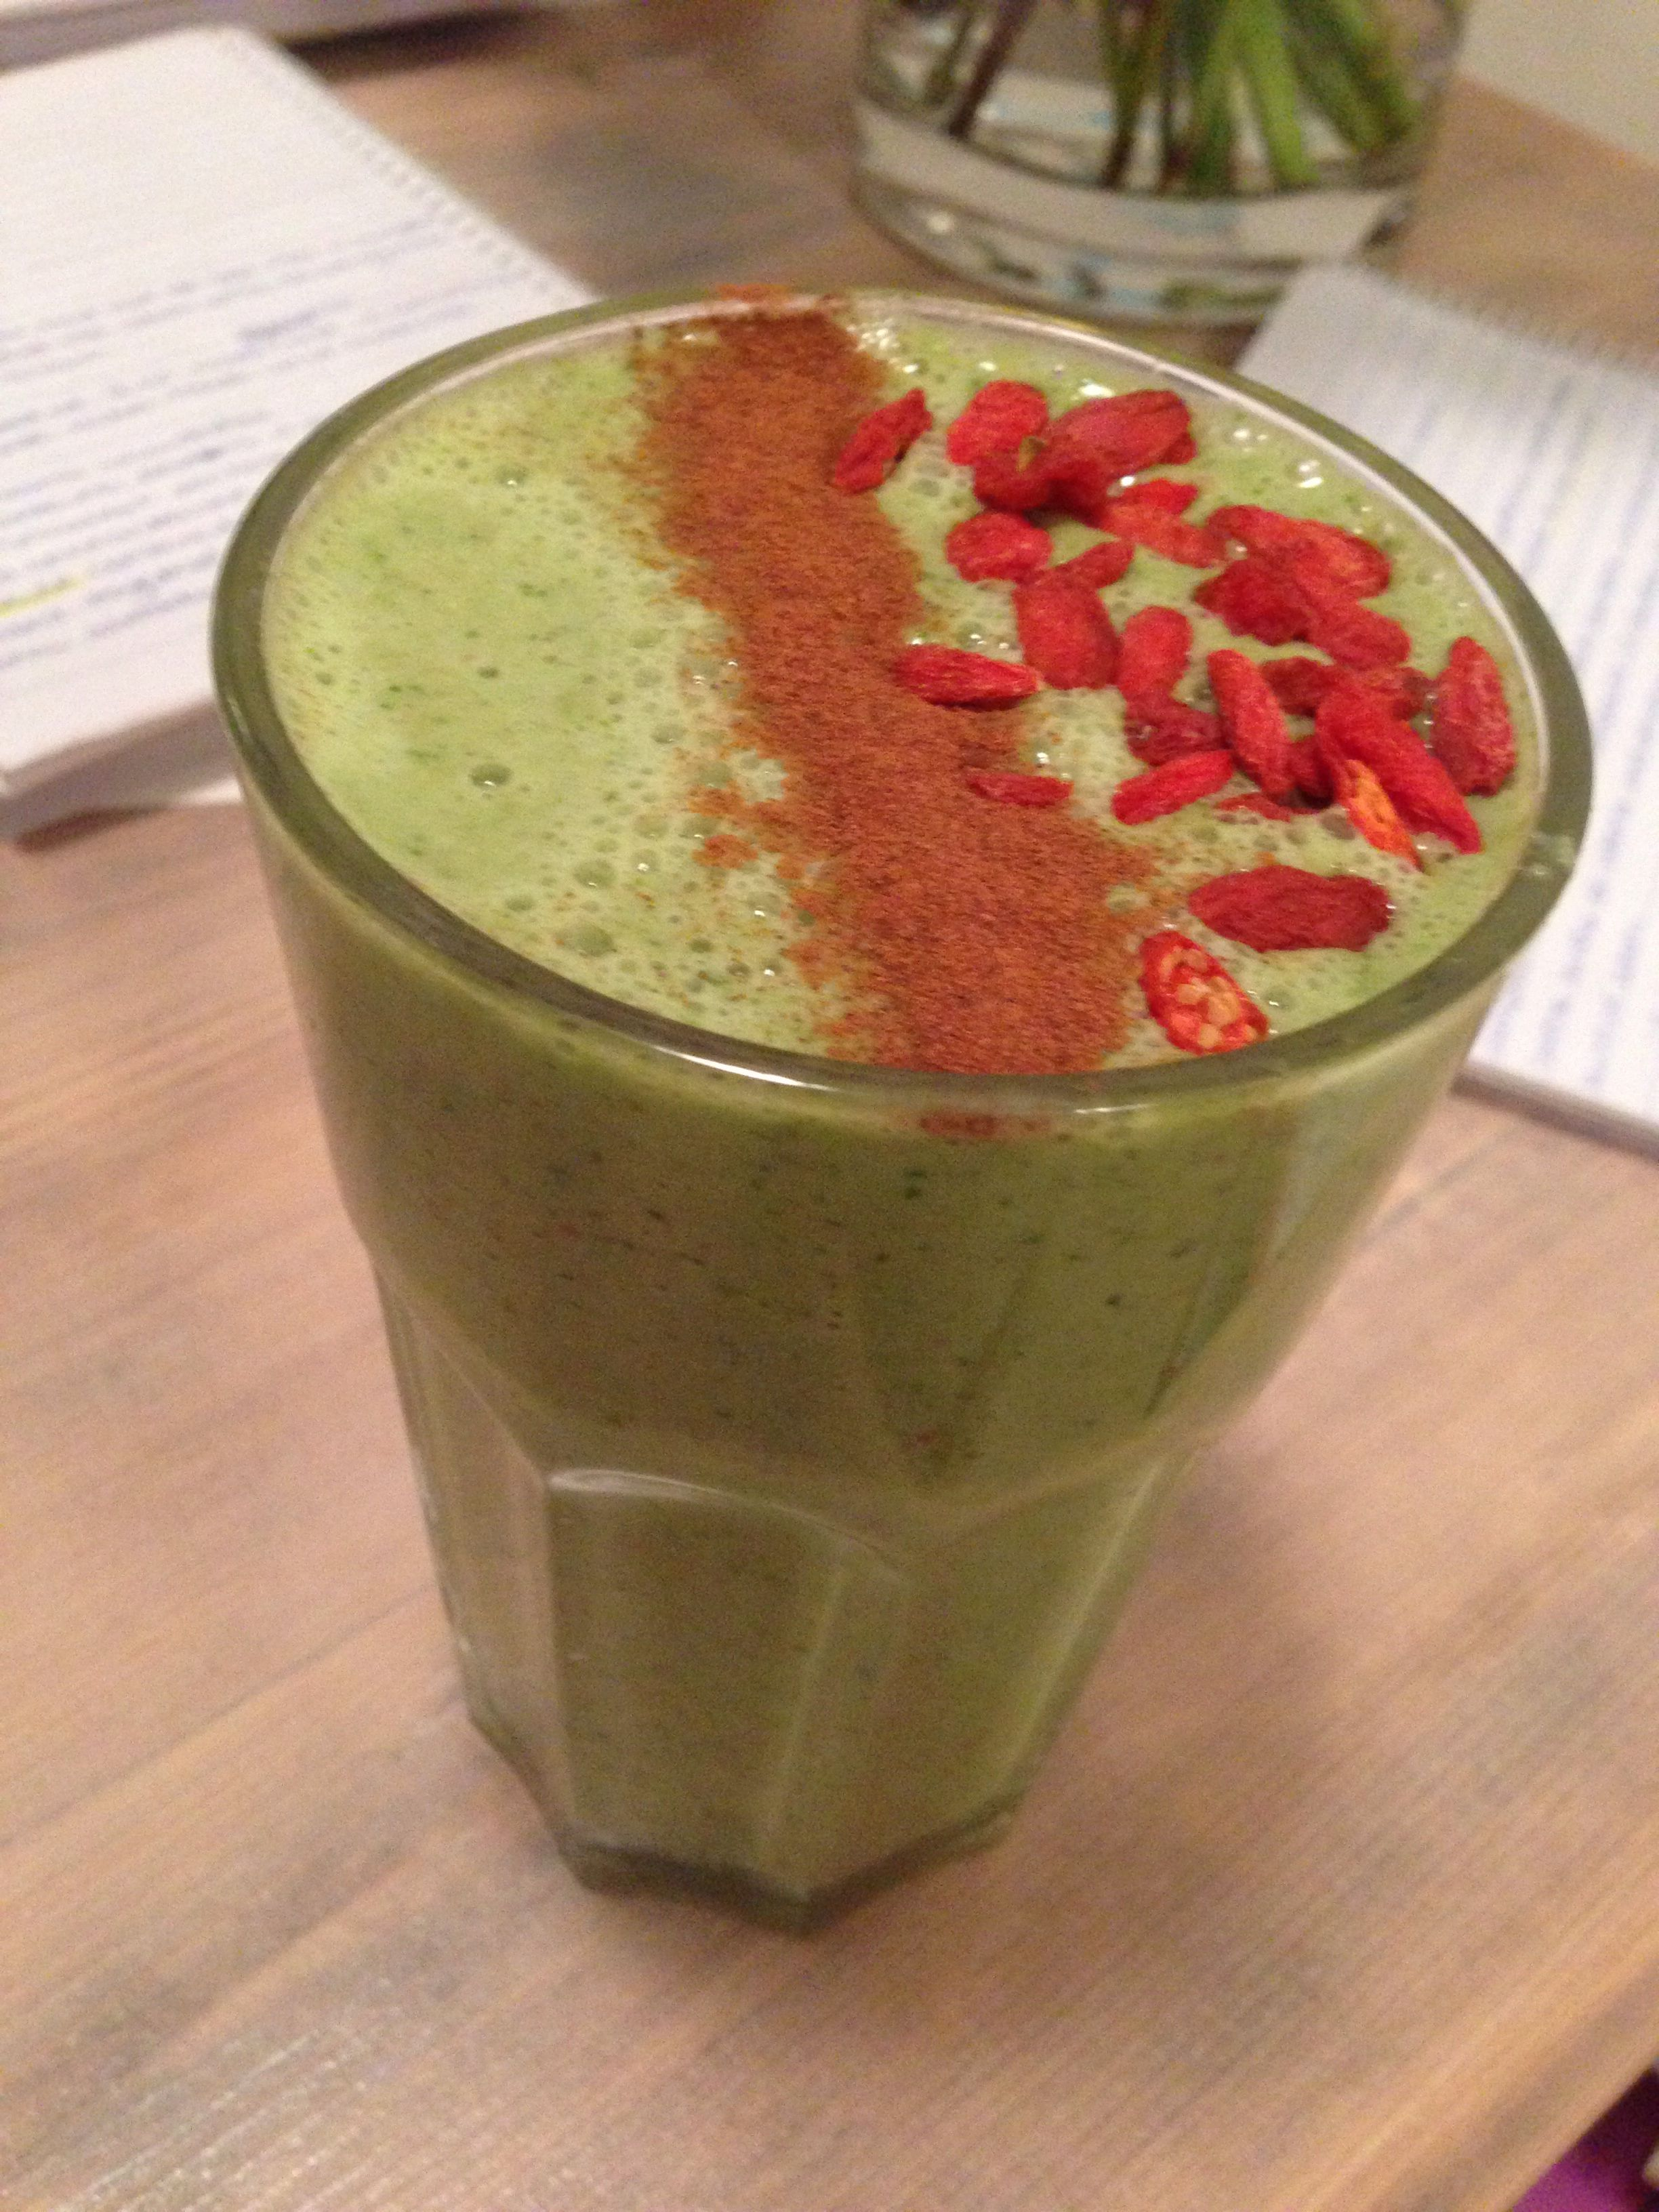 Kale apple strawberry and natural yogurt smoothie  topped with cinnamon and goji berries  delish!